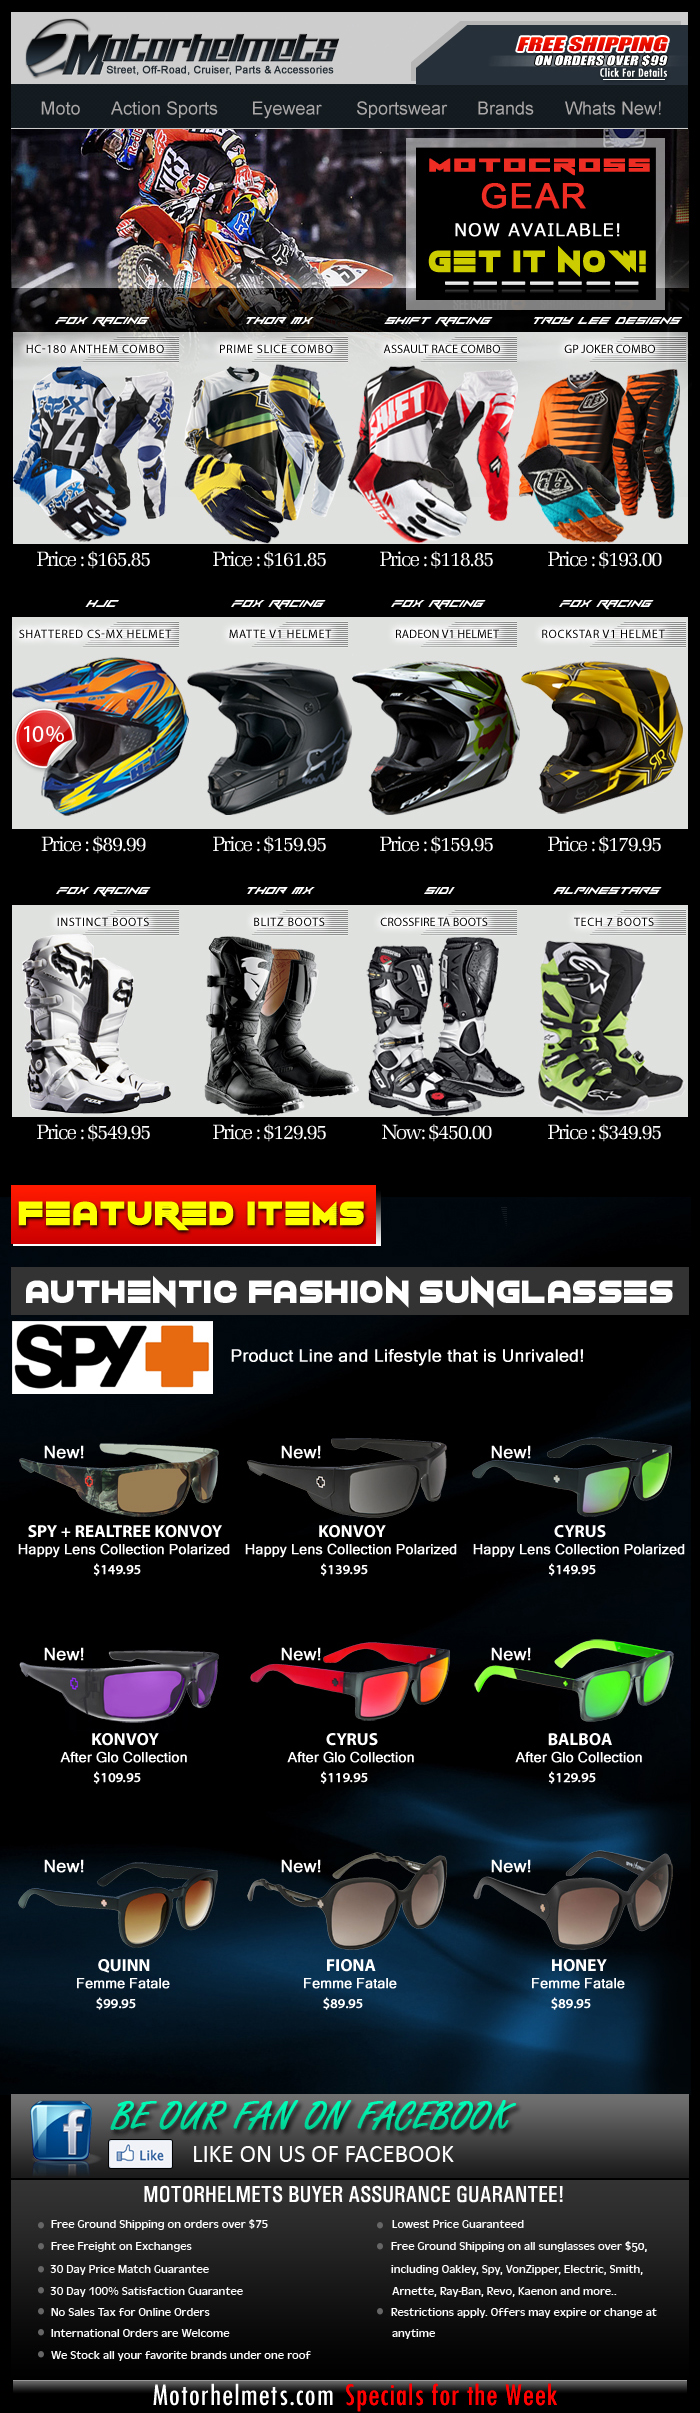 New Arrivals...Fresh Motocross Gear Selection from Fox, Thor MX, Shift, TLD and more!